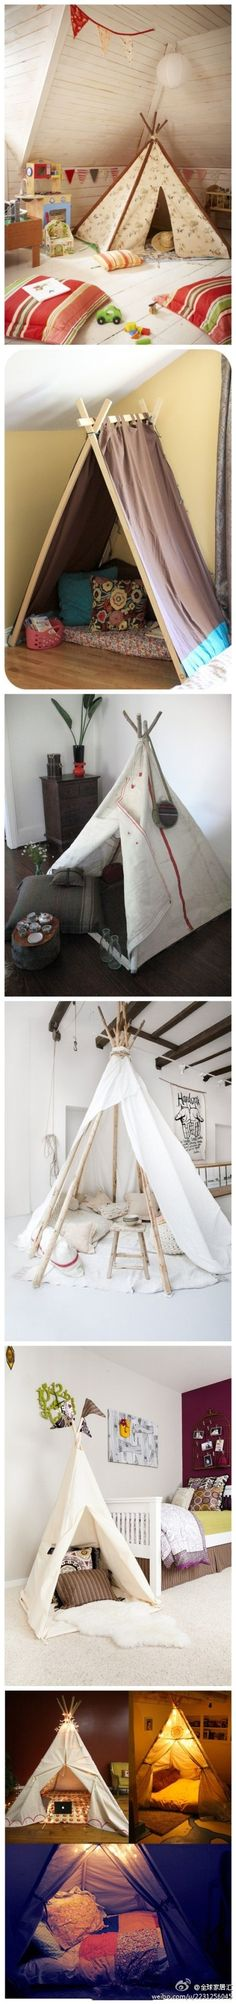 I Want this For my Children My Sweet Home Keka❤❤❤